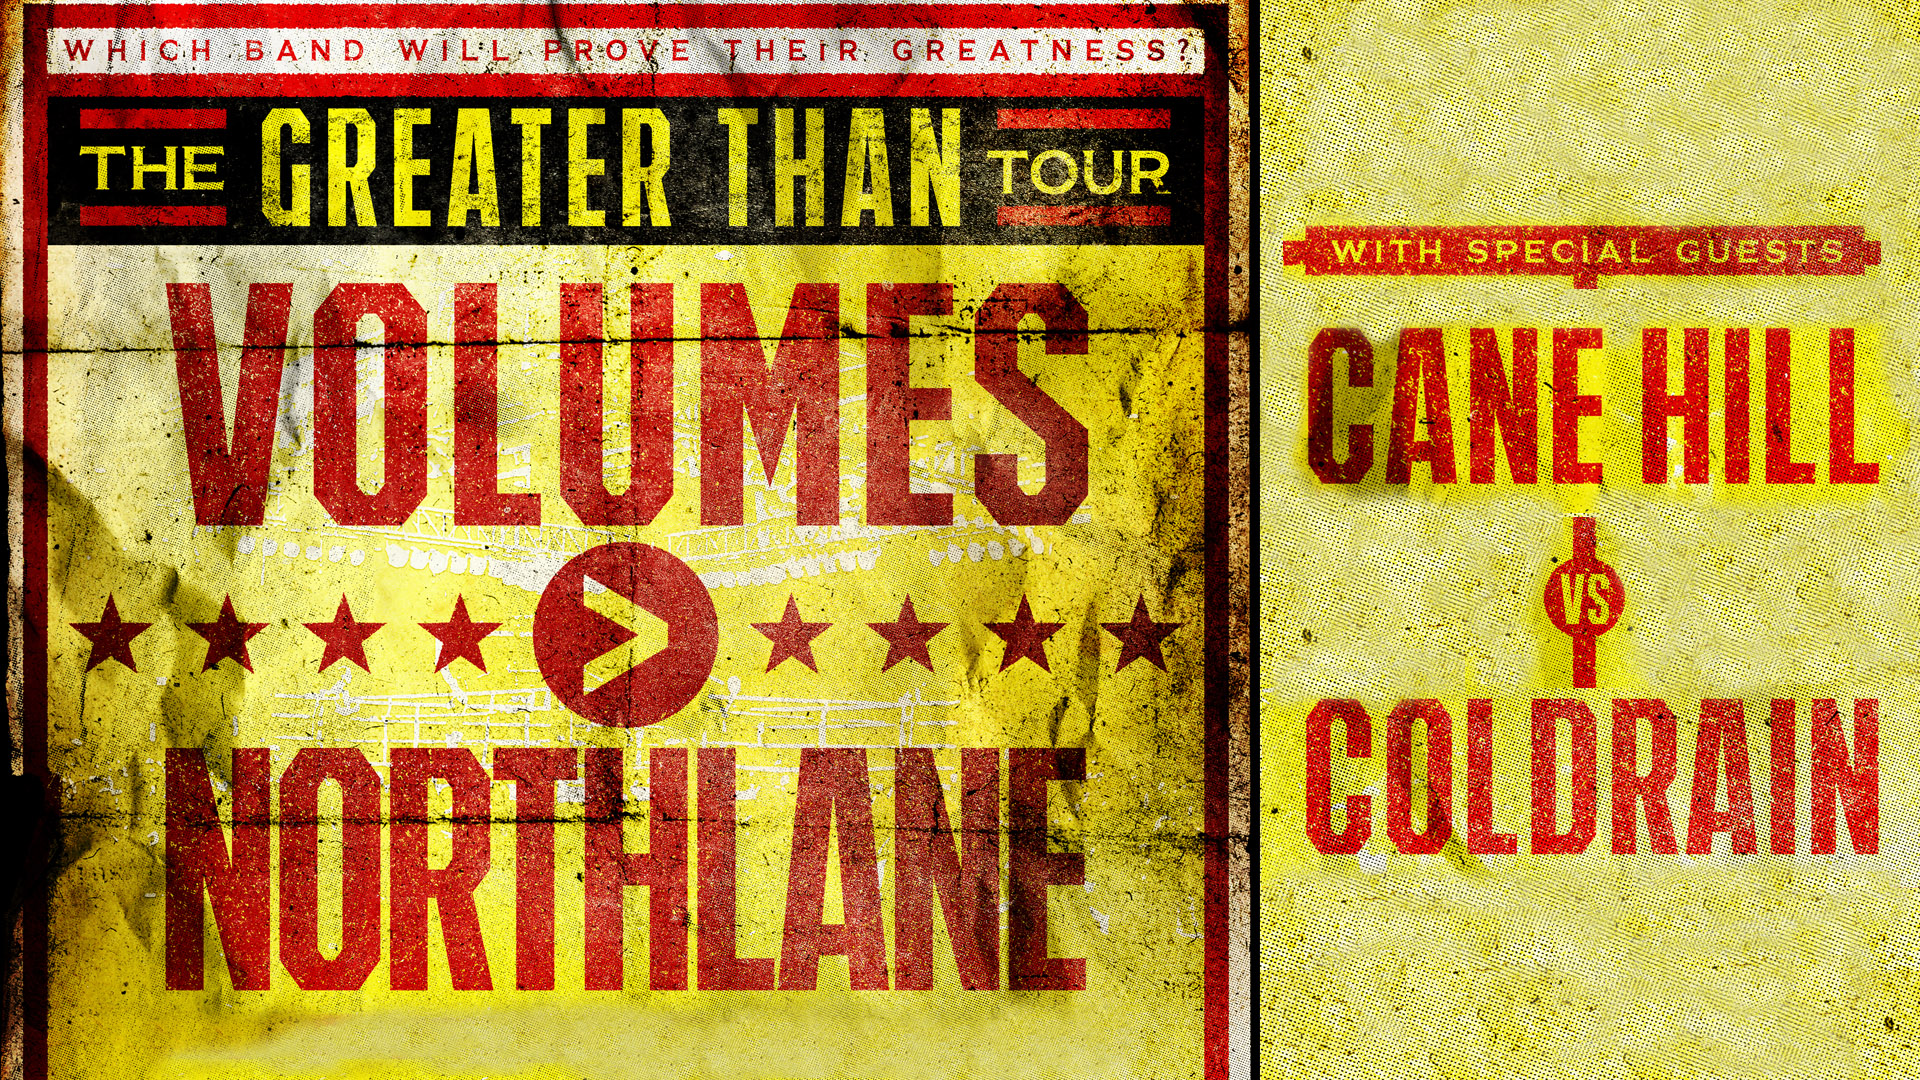 Volumes - Northlane - Cane Hill - Cold Rain